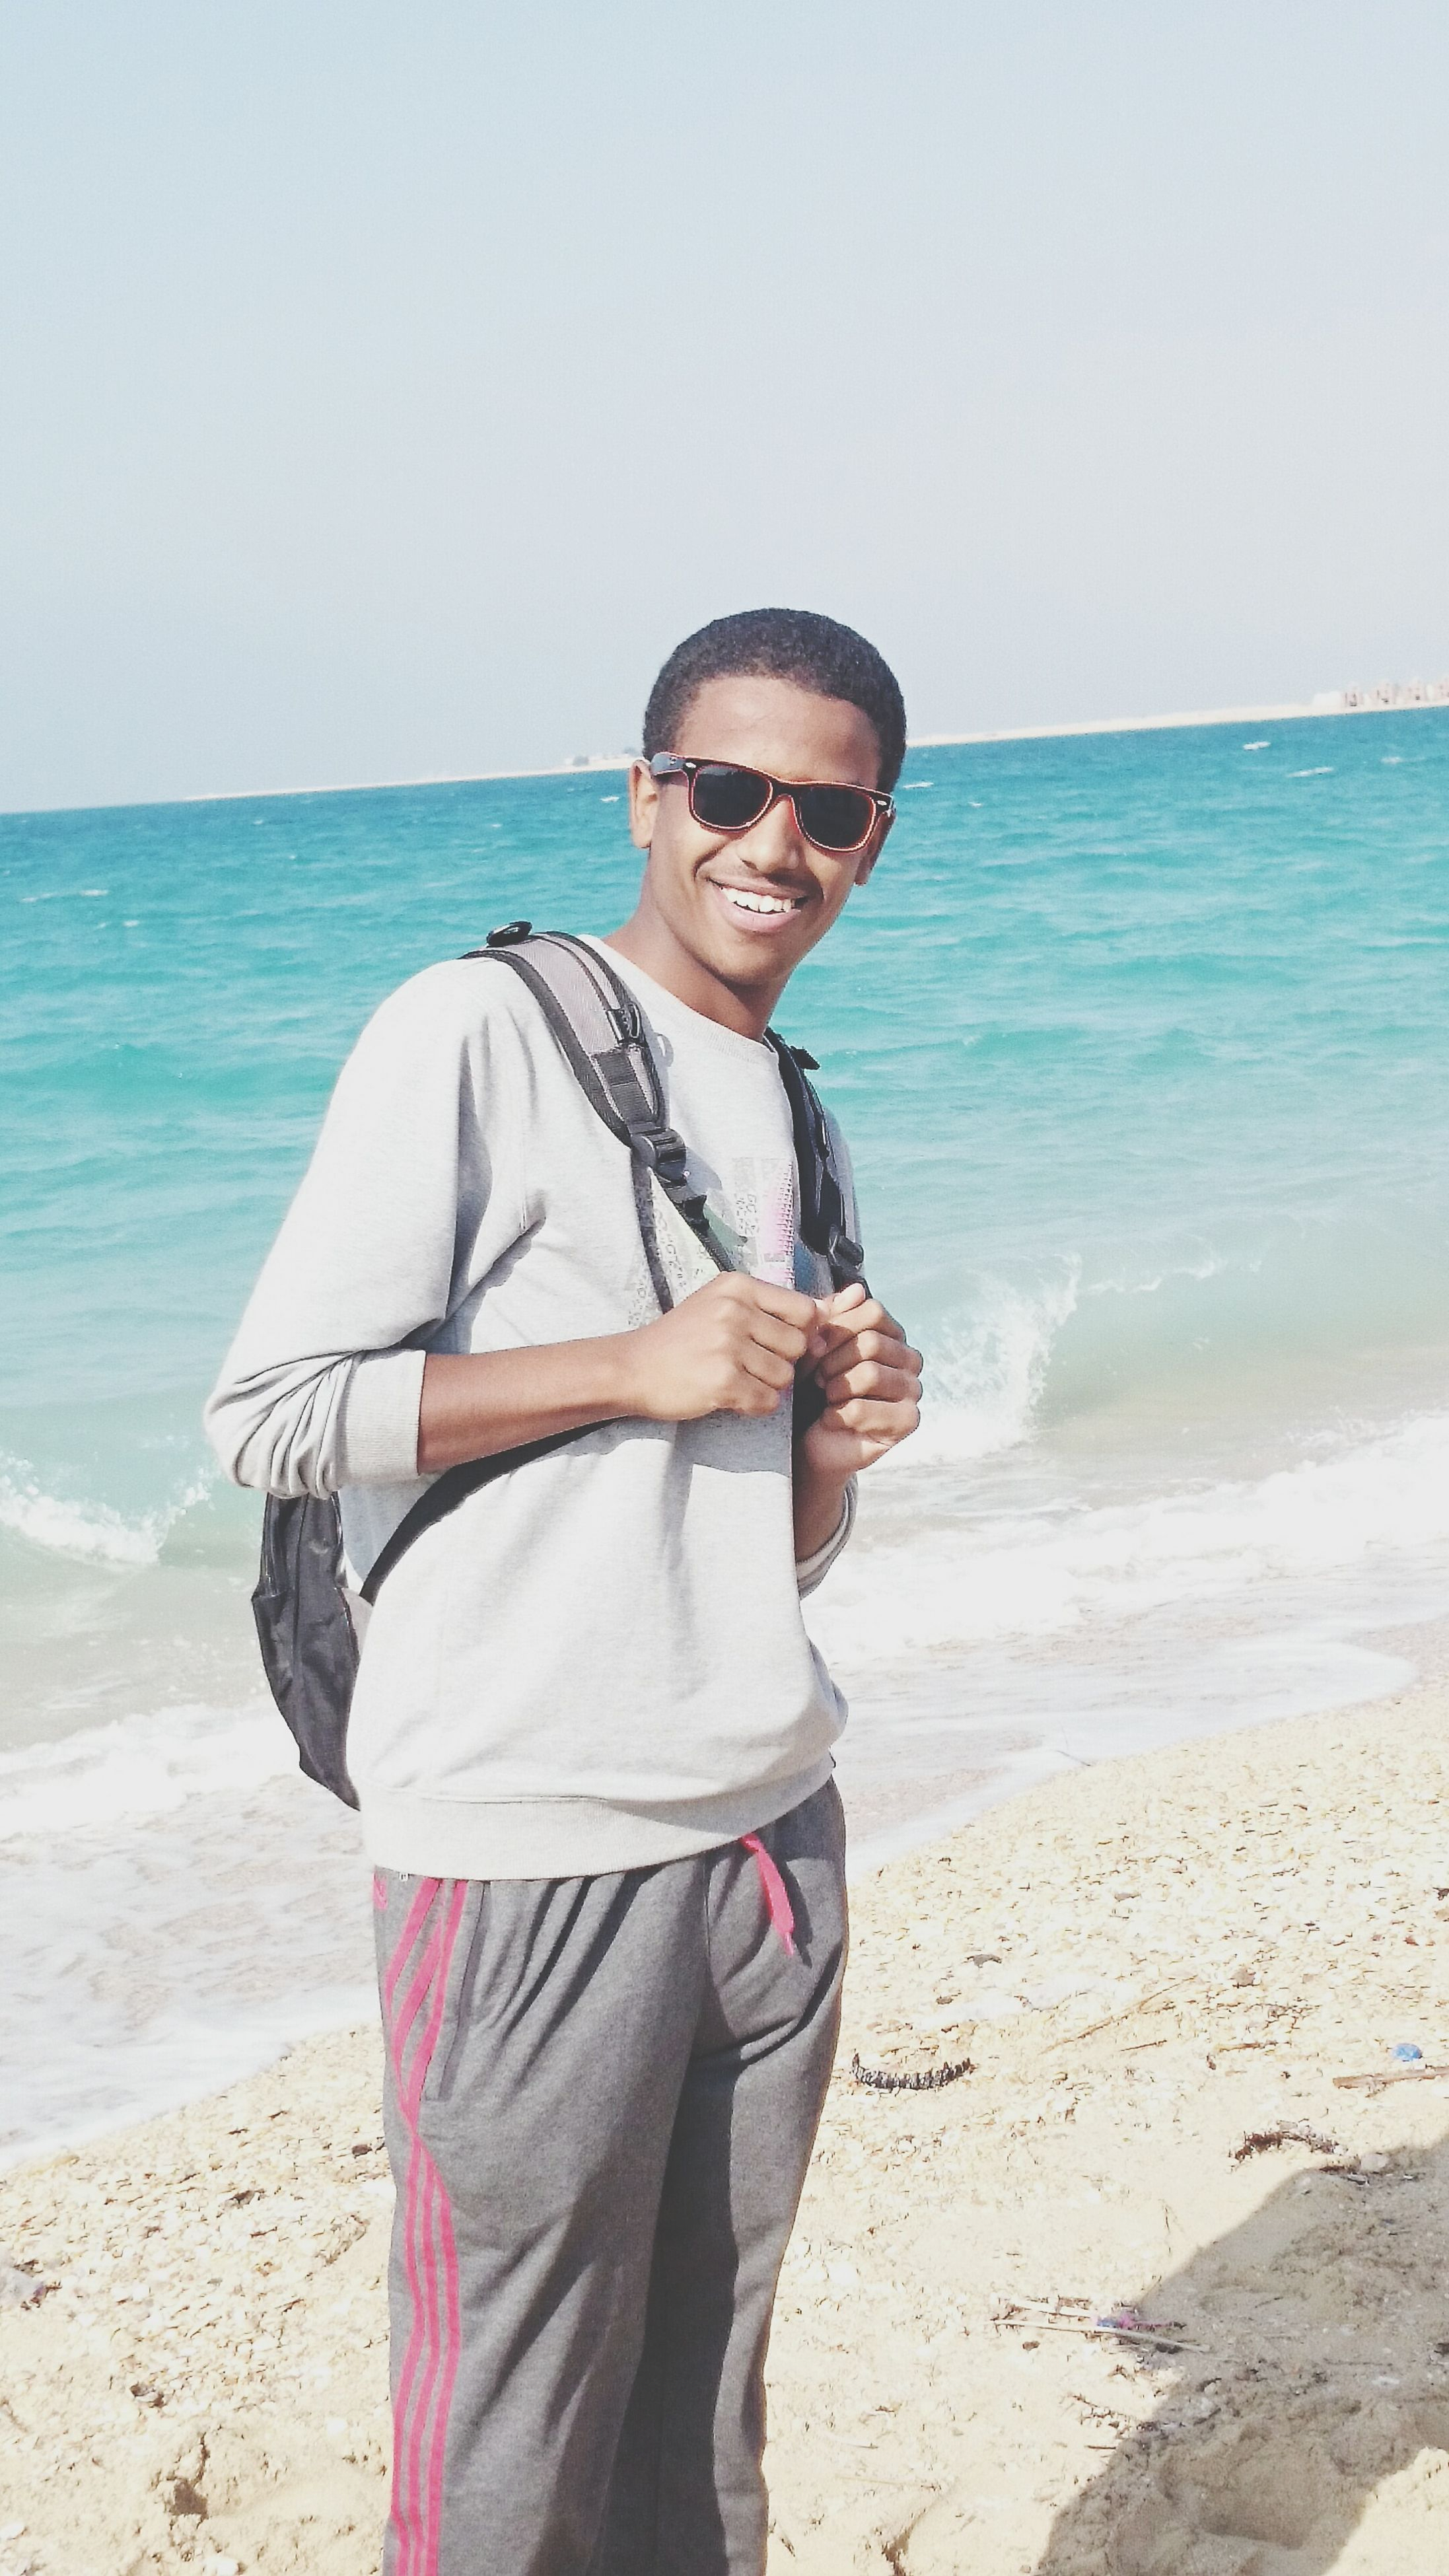 sea, beach, young adult, lifestyles, person, casual clothing, water, horizon over water, shore, portrait, looking at camera, leisure activity, standing, sunglasses, clear sky, young men, front view